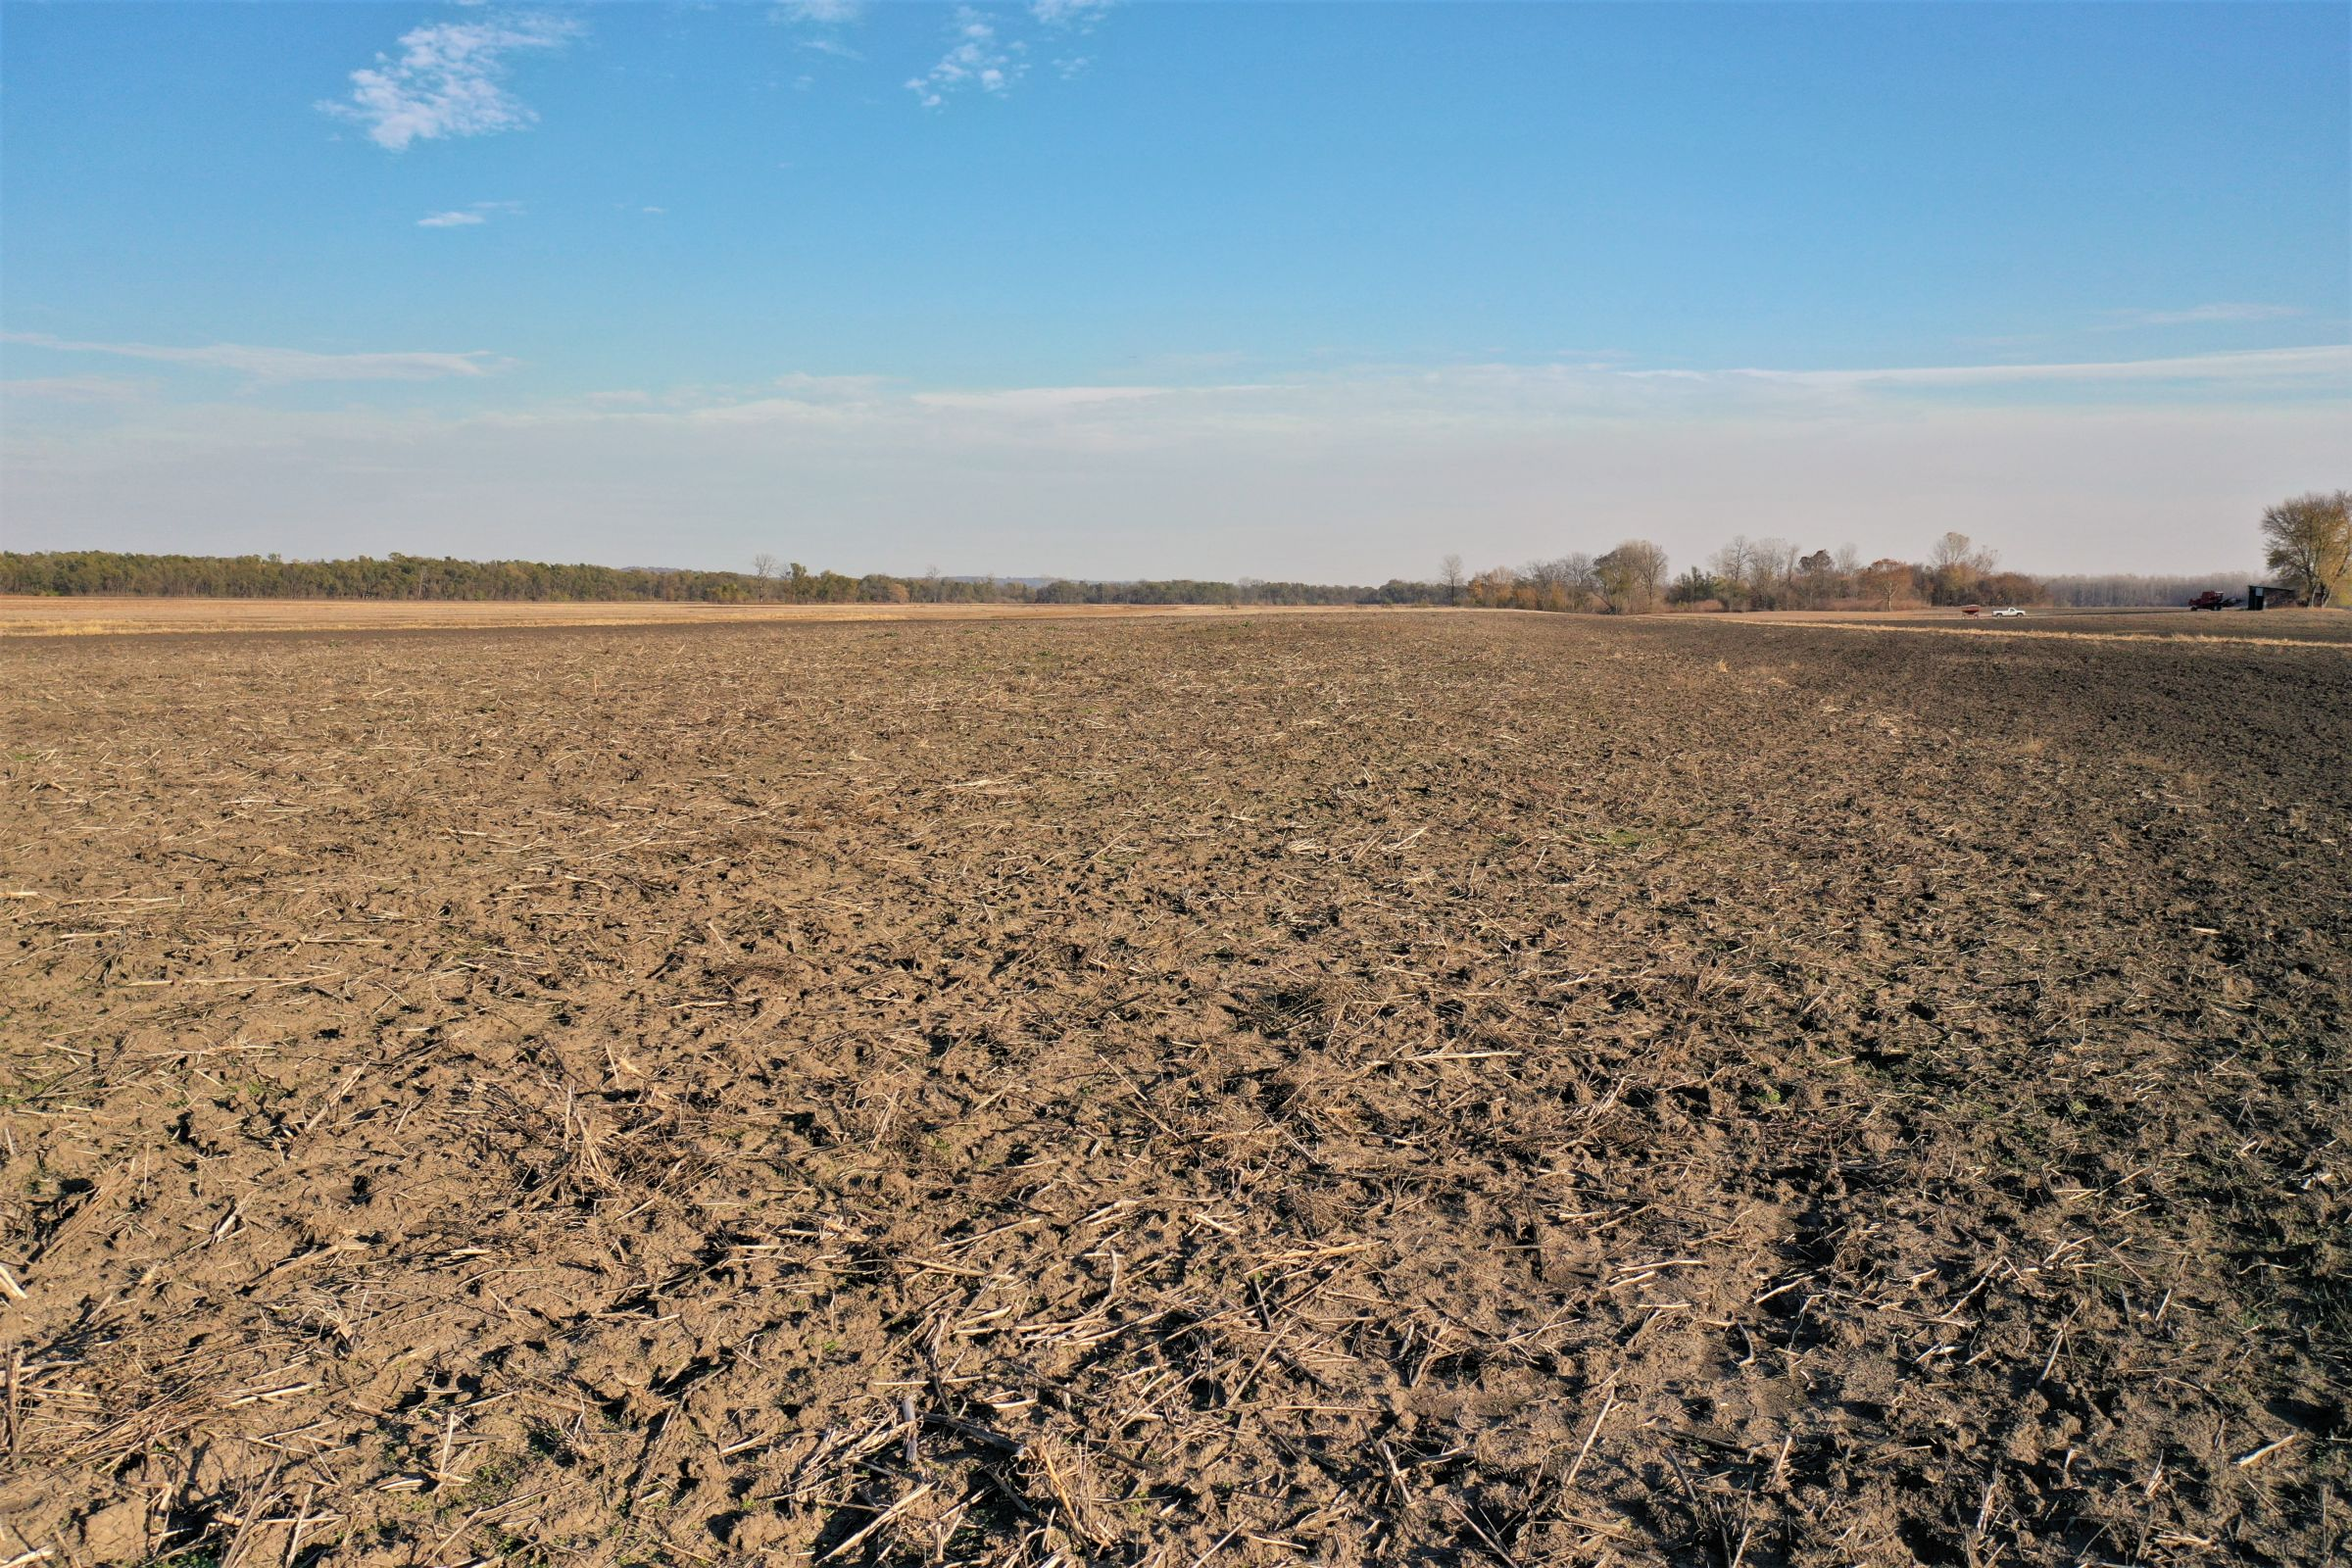 land-monroe-county-illinois-111-acres-listing-number-15264-2-2020-11-20-192521.jpg